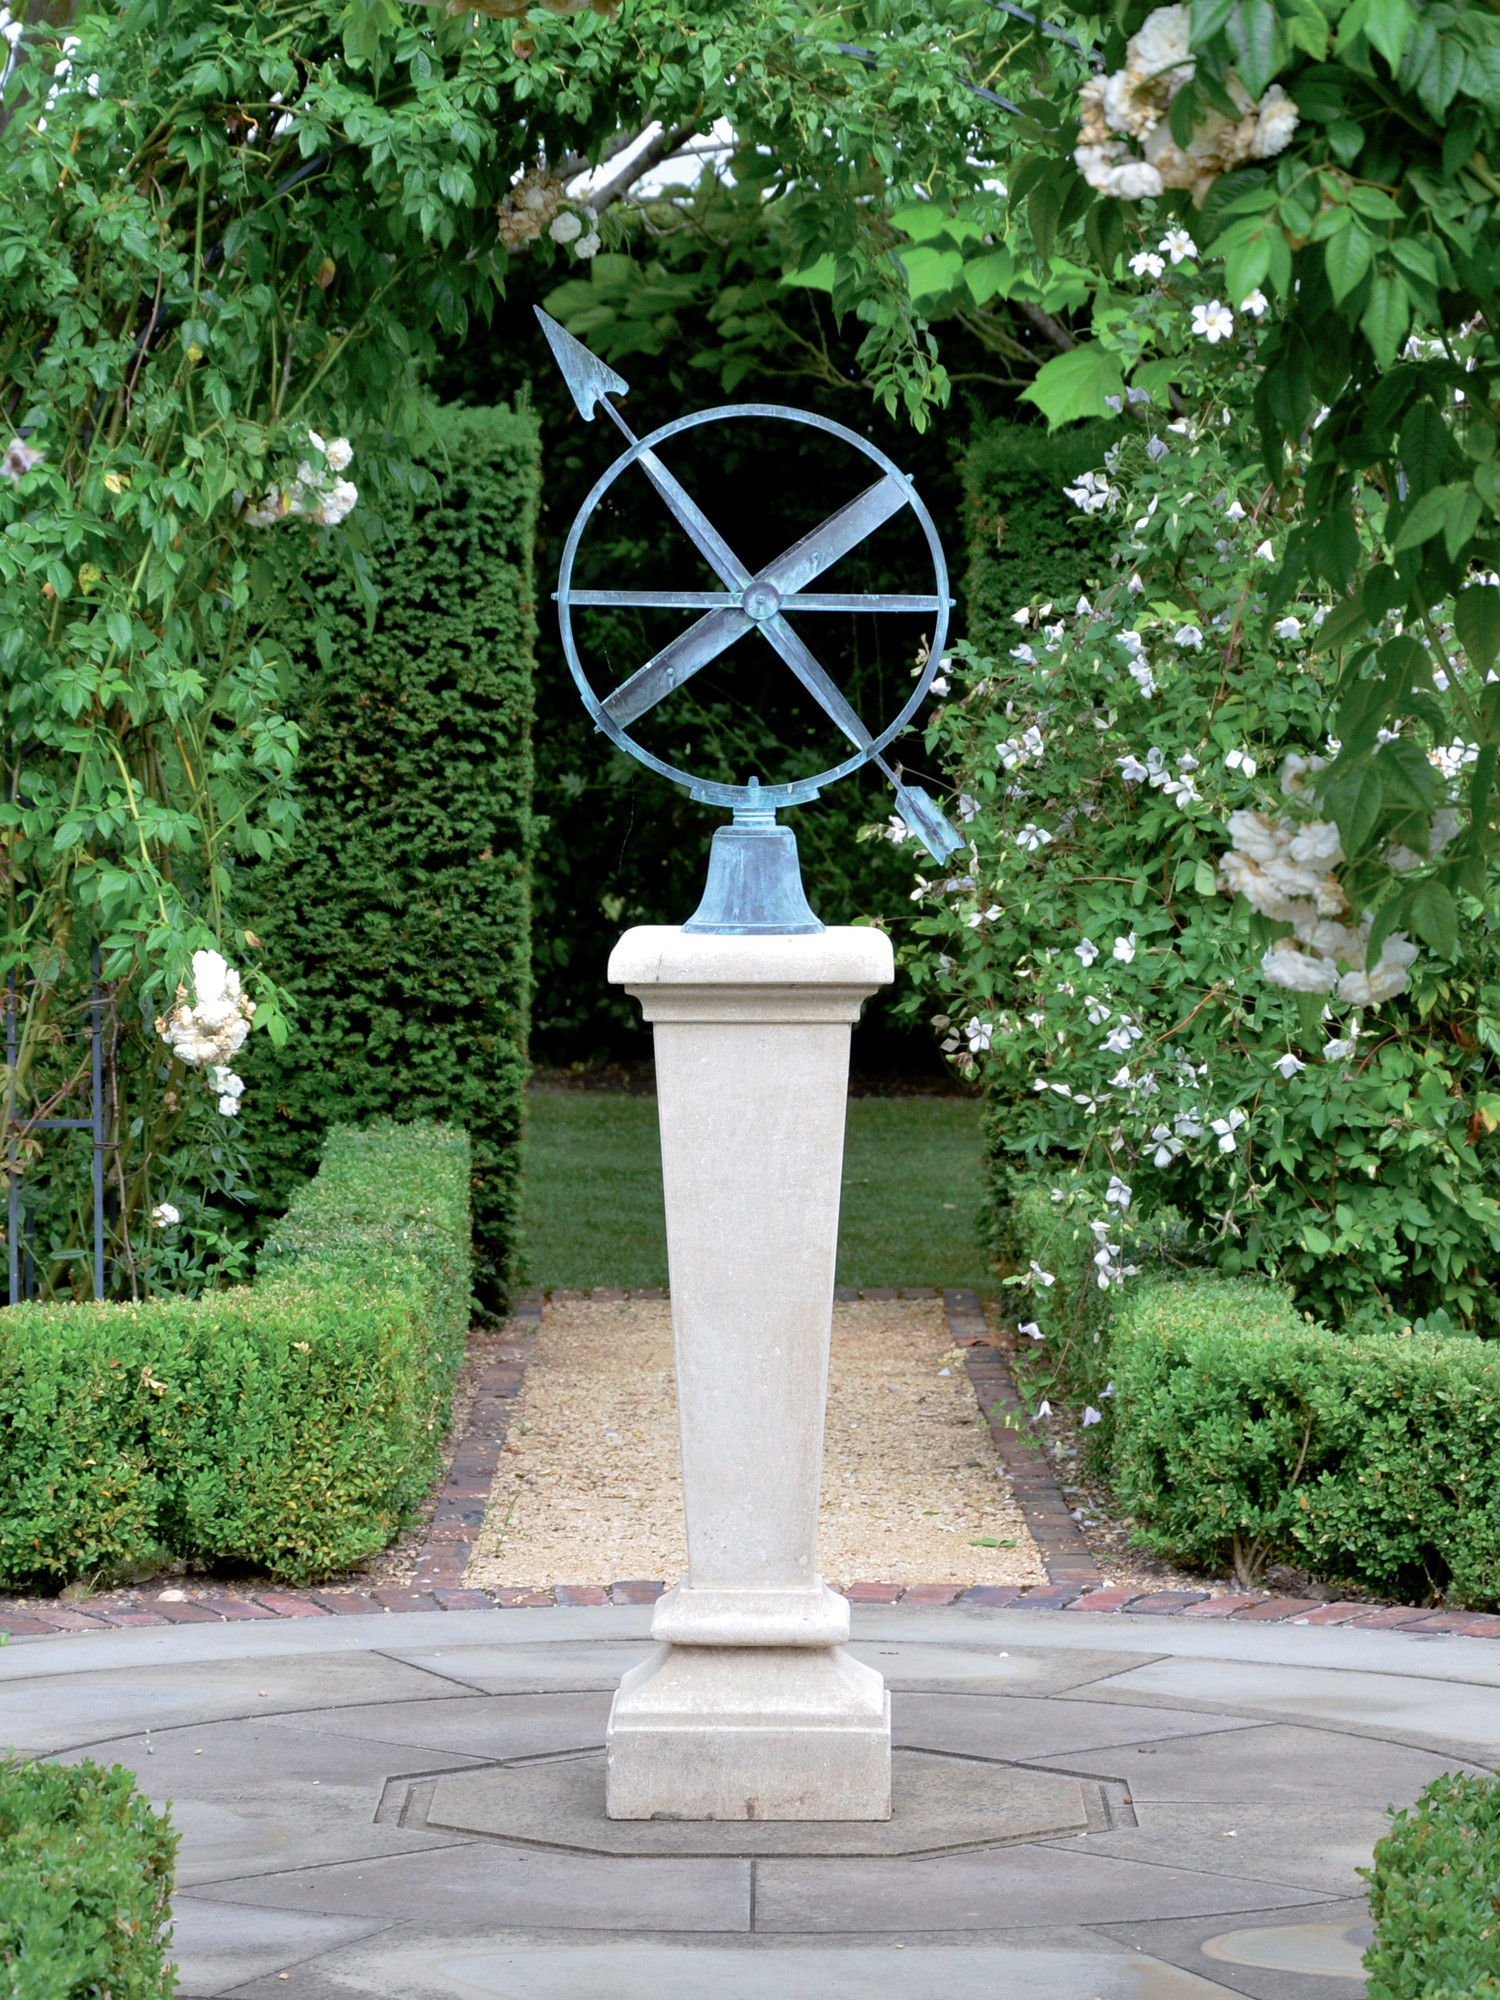 The Zenith Armillary Sphere